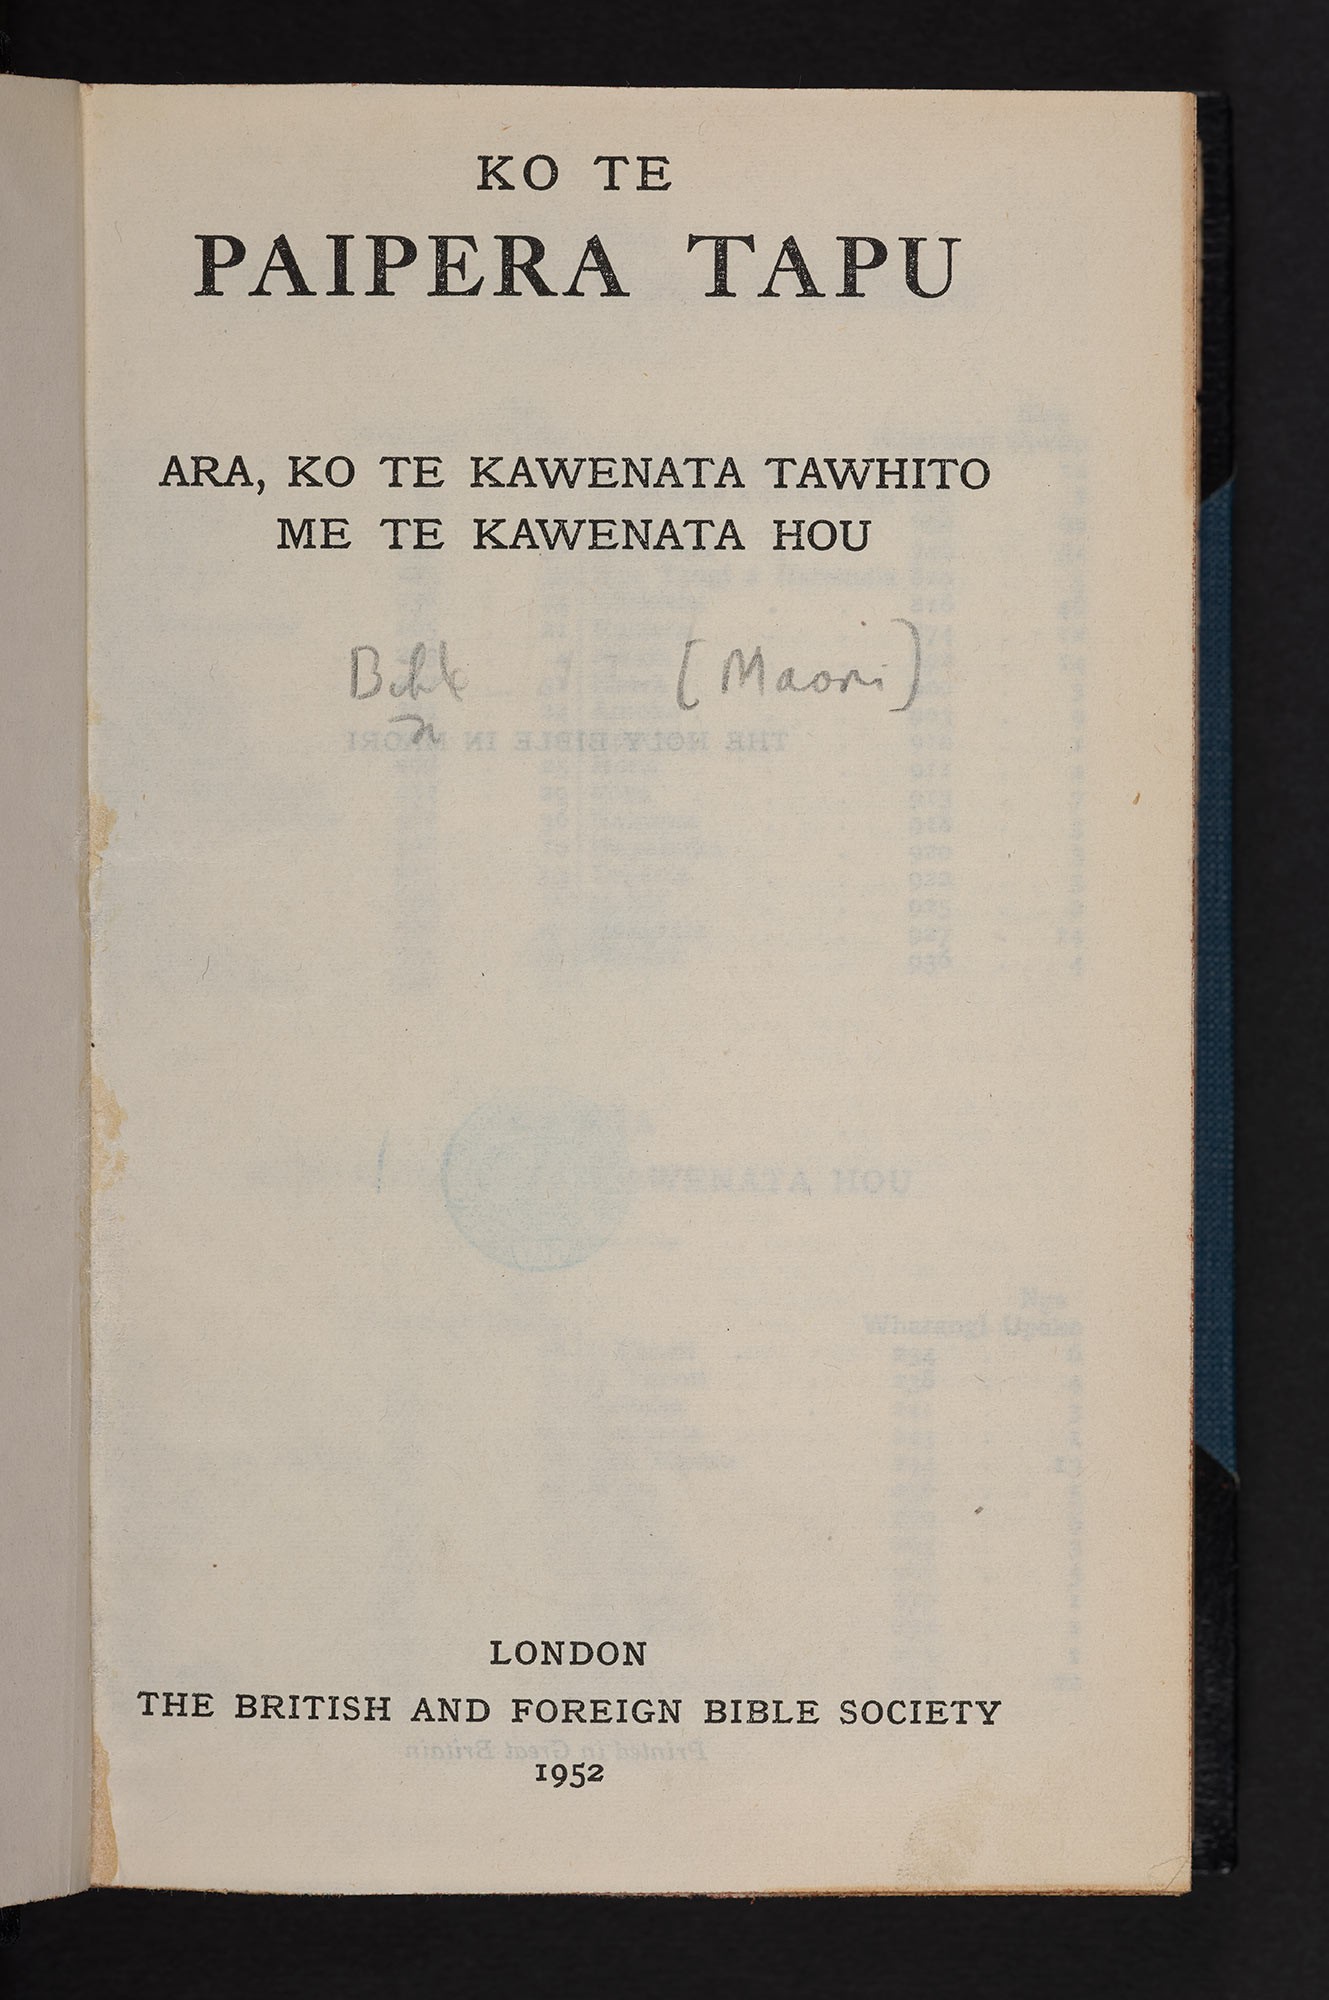 The Holy Bible in Maori